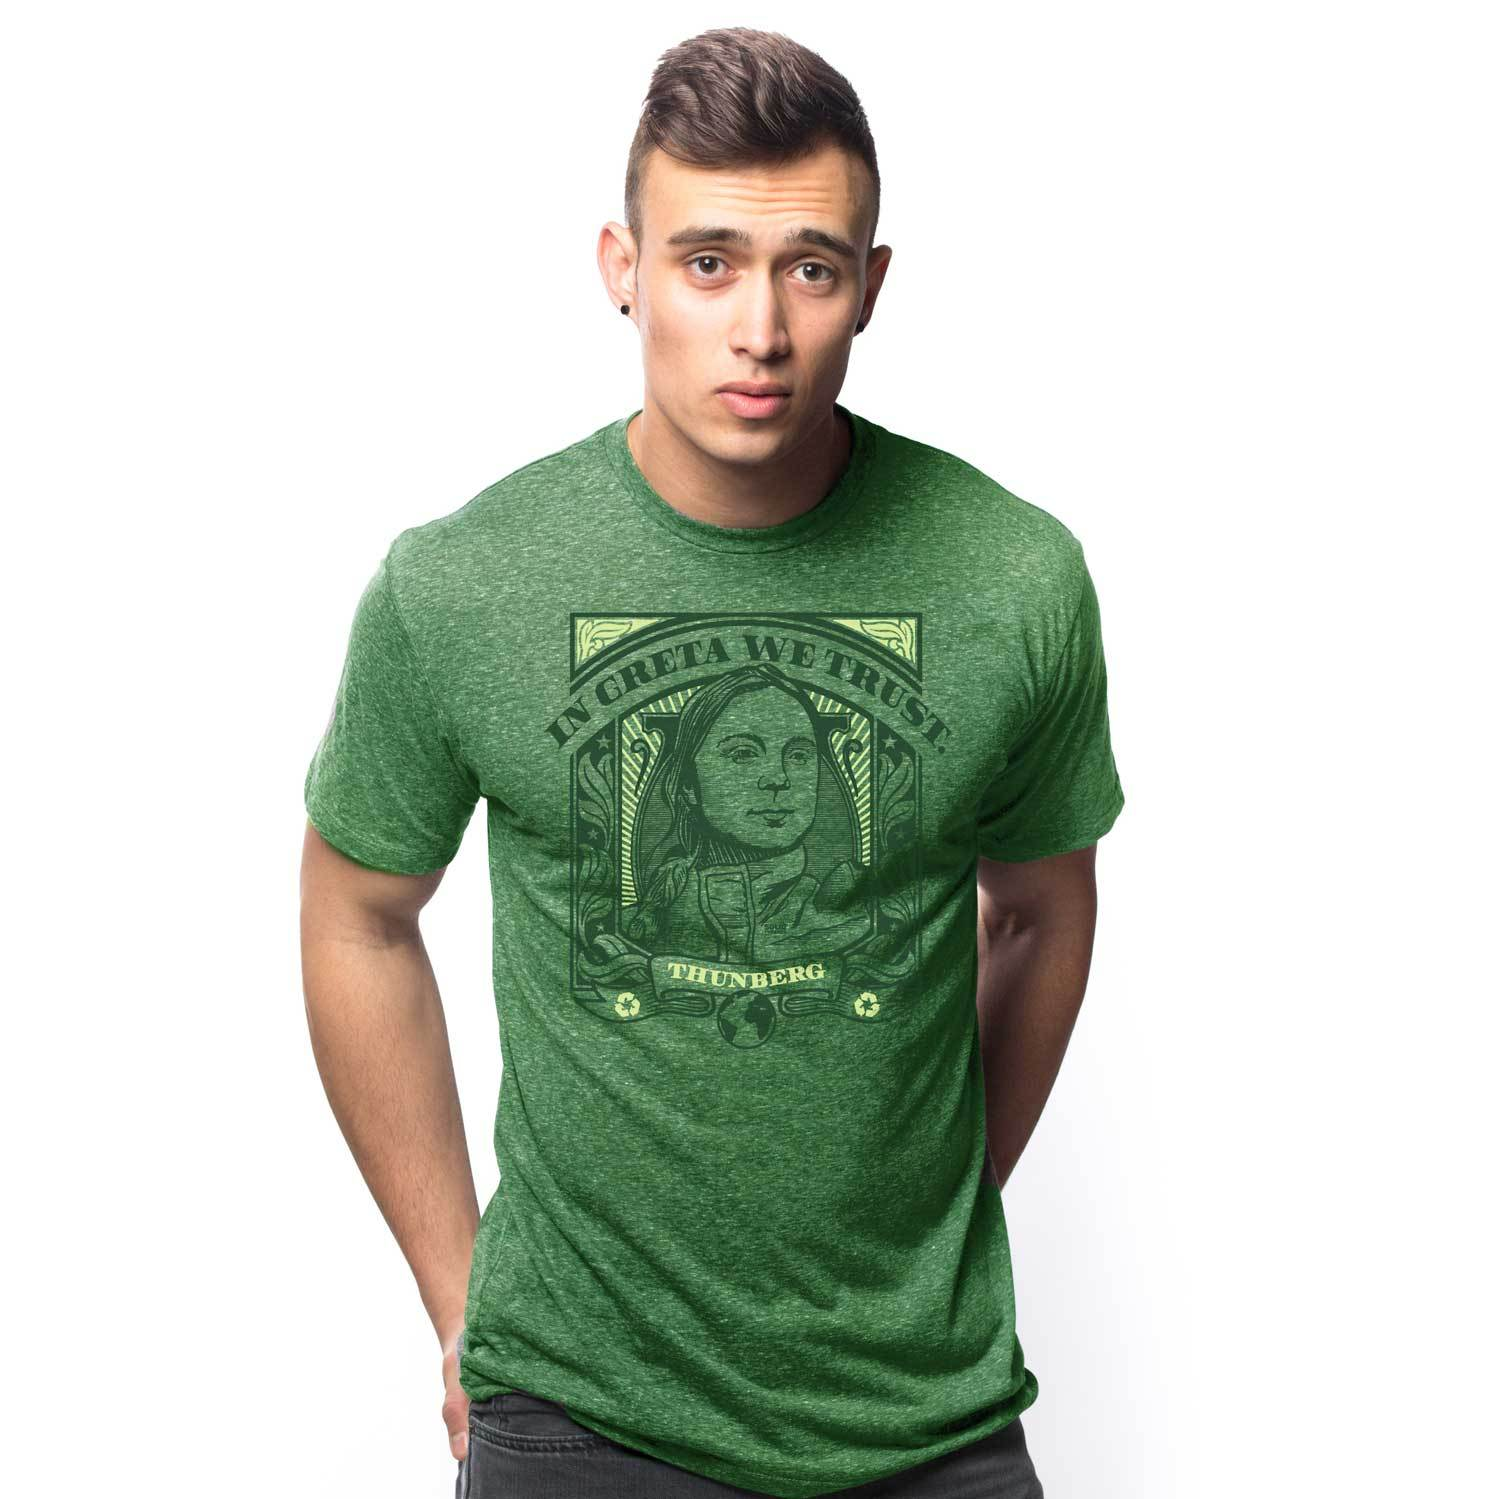 Men's In Greta Thunberg We Trust Vintage Inspired T-Shirt | Retro Environmental Activism Graphic Tee | Solid Threads